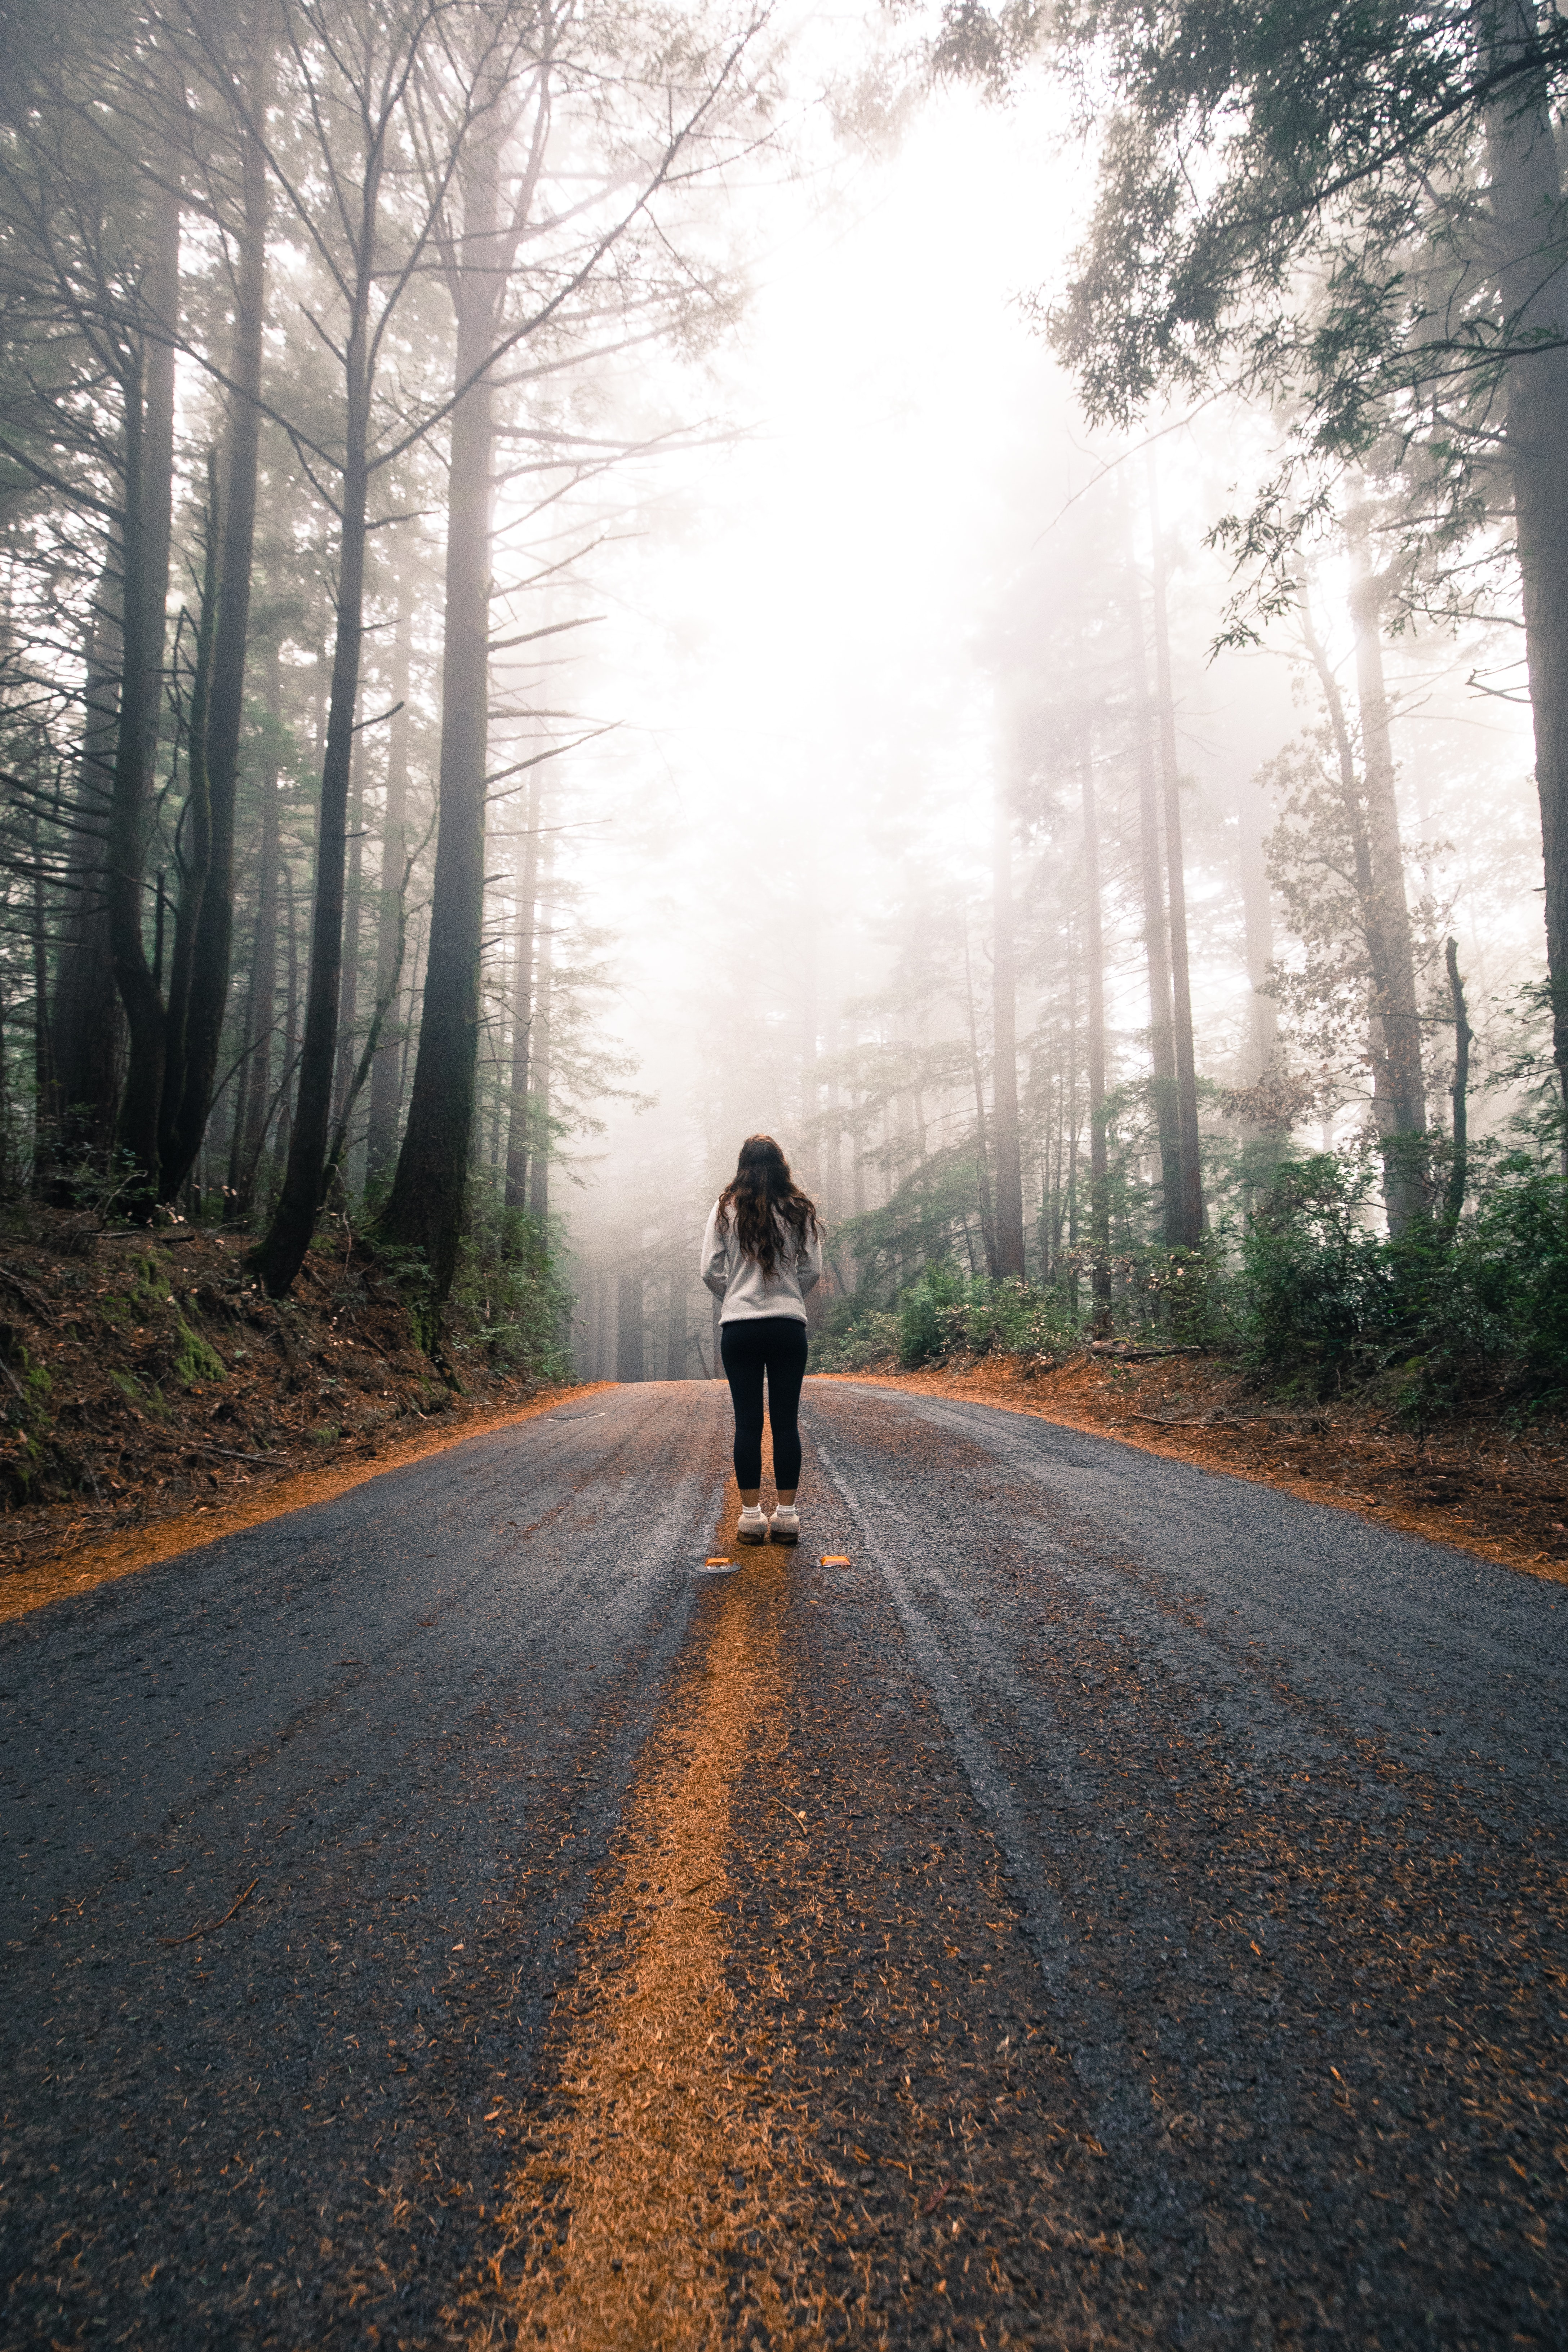 woman standing on paved road surrounded by green leaf trees